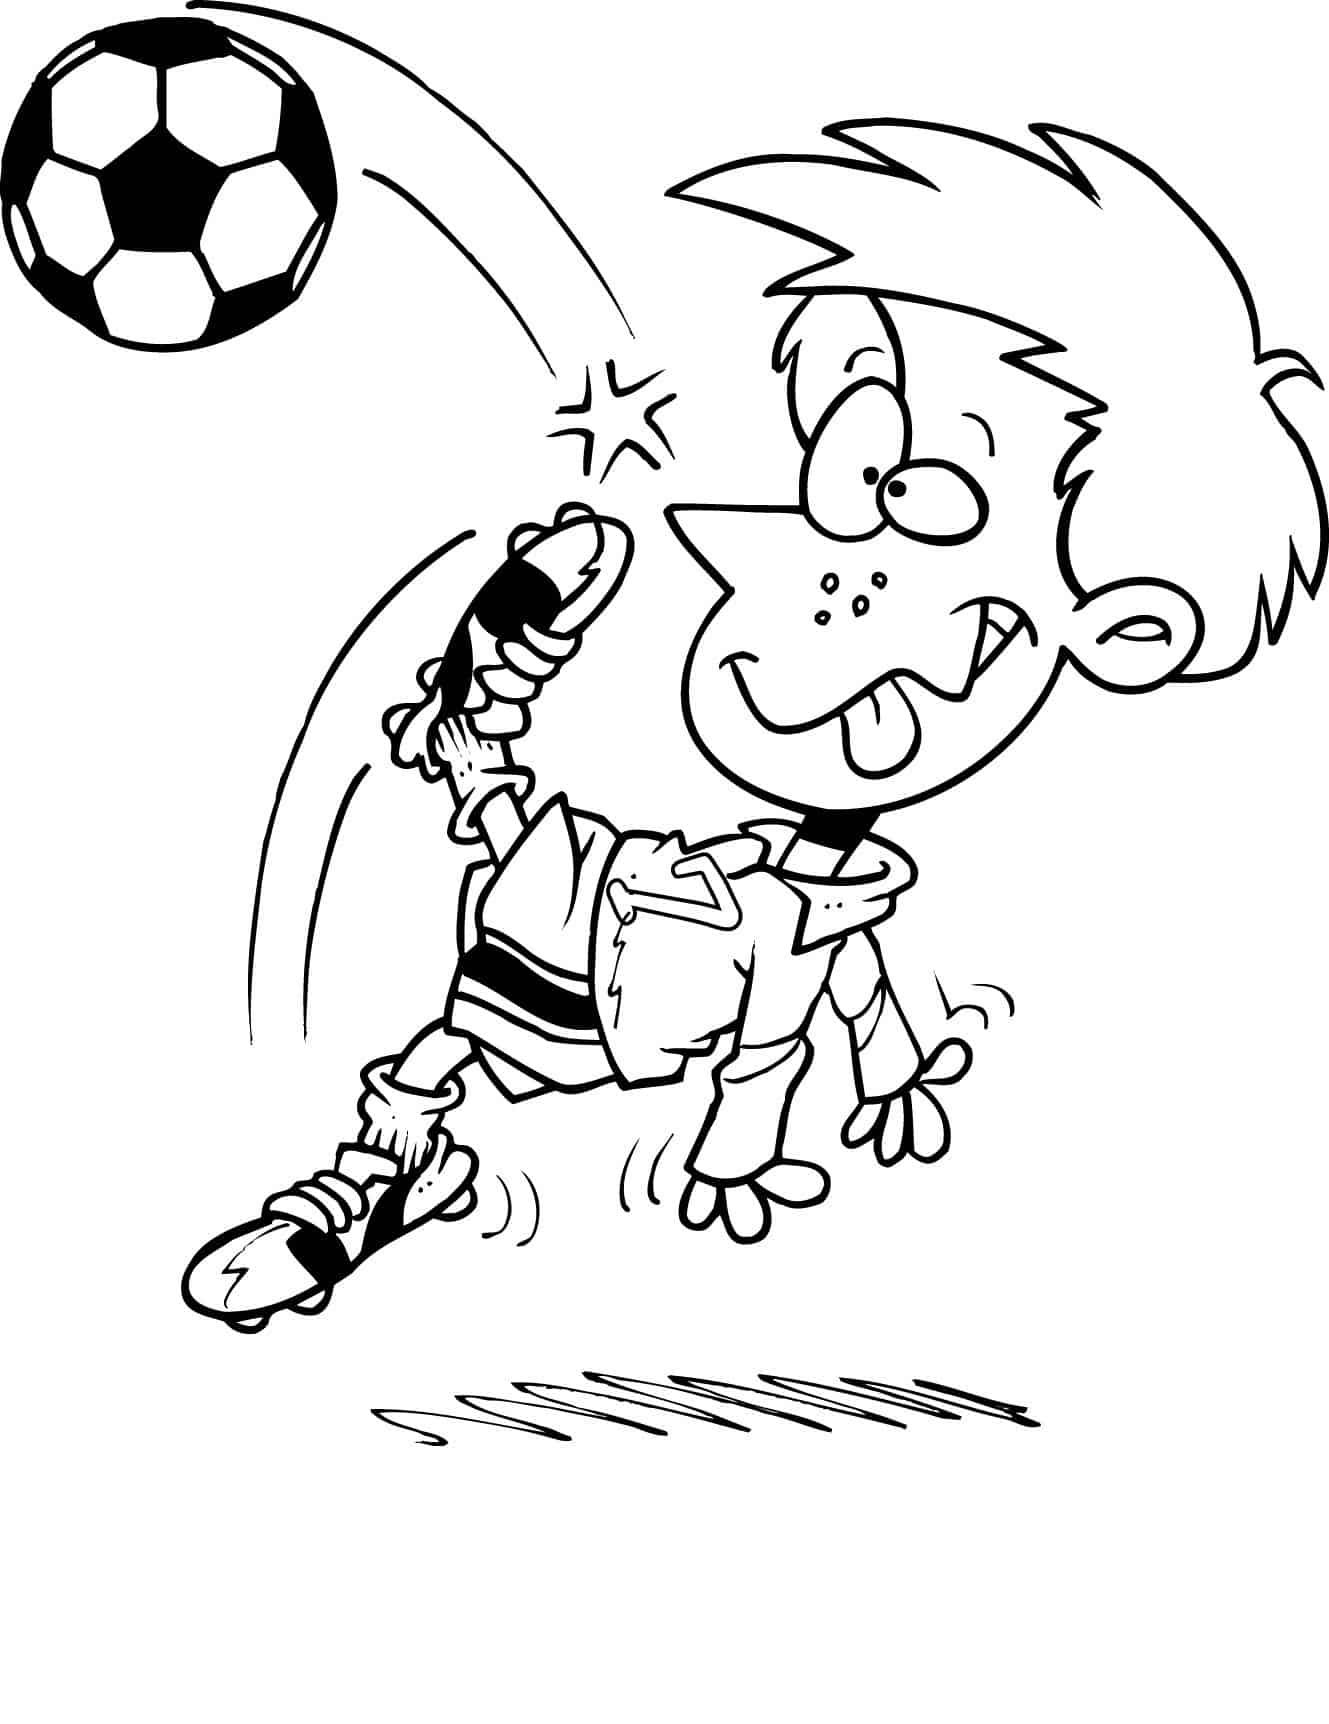 football pictures to print and colour football player coloring pages sports coloring pages football to and colour print pictures